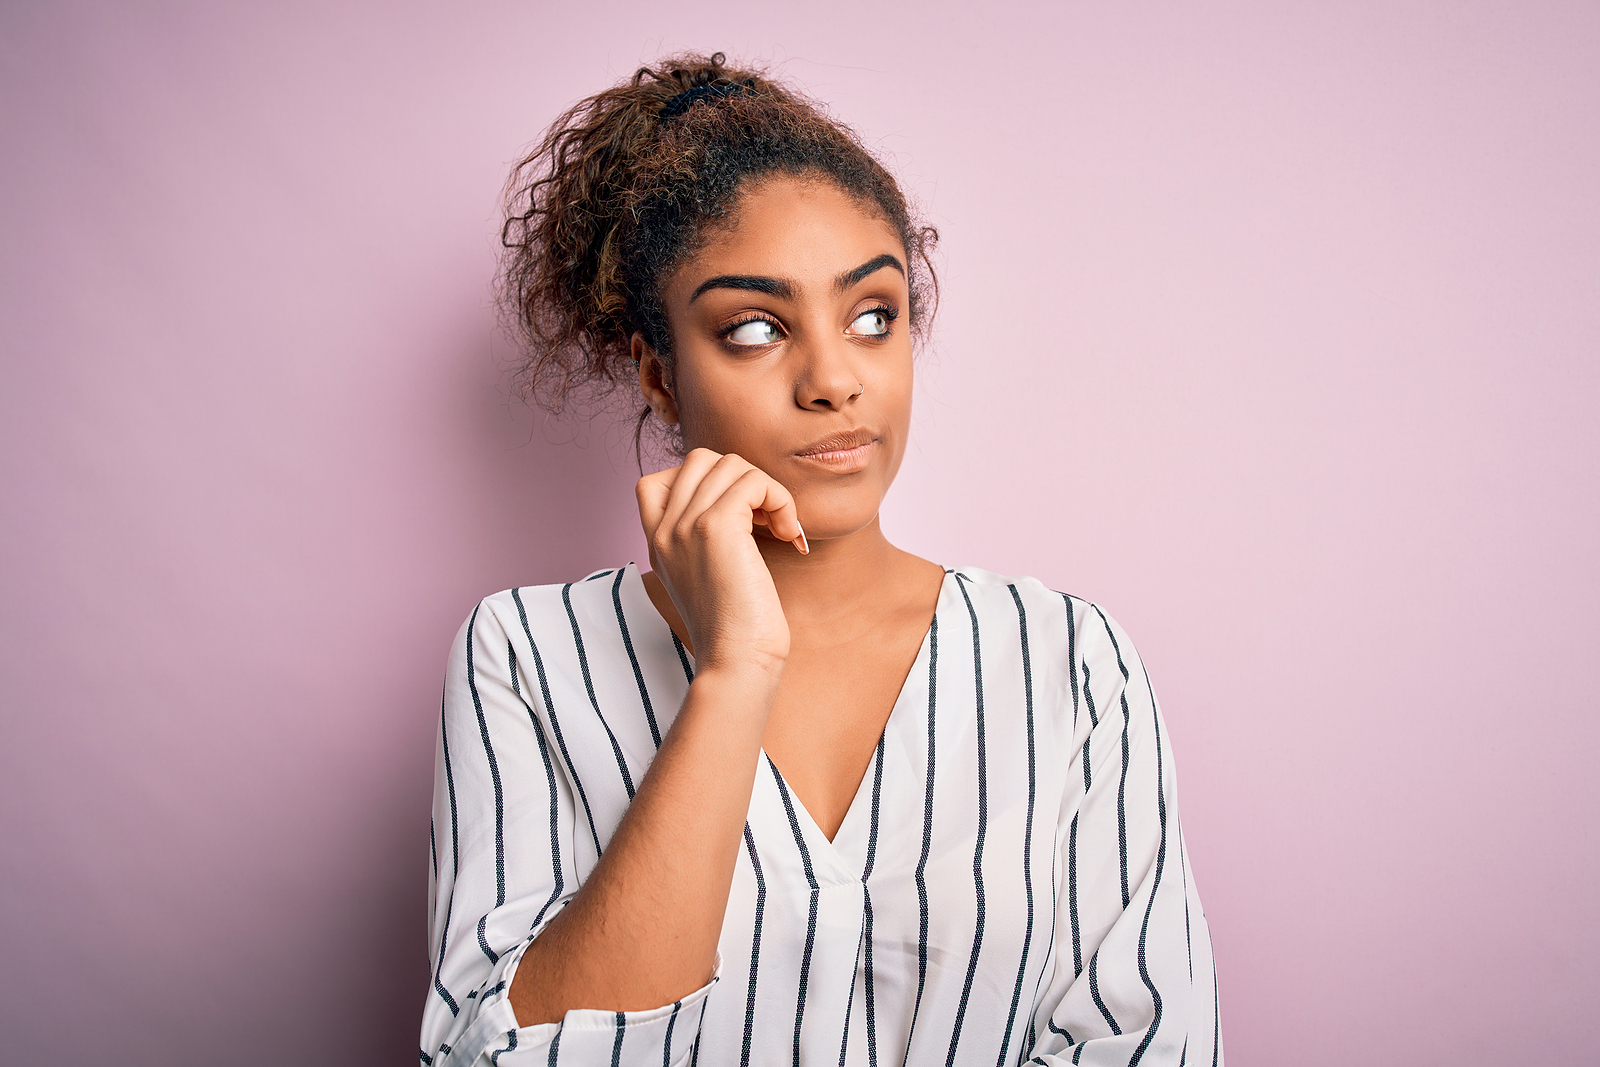 Young beautiful african american woman wearing striped t-shirt on a pink background looking like she has some questions about online therapy in Florida. You can find anxiety treatment with online therapist, Enid, for online therapy in Florida. You can get help with imposter syndrome, codependency treatment and perfectionism counseling for women in miramar, fl.